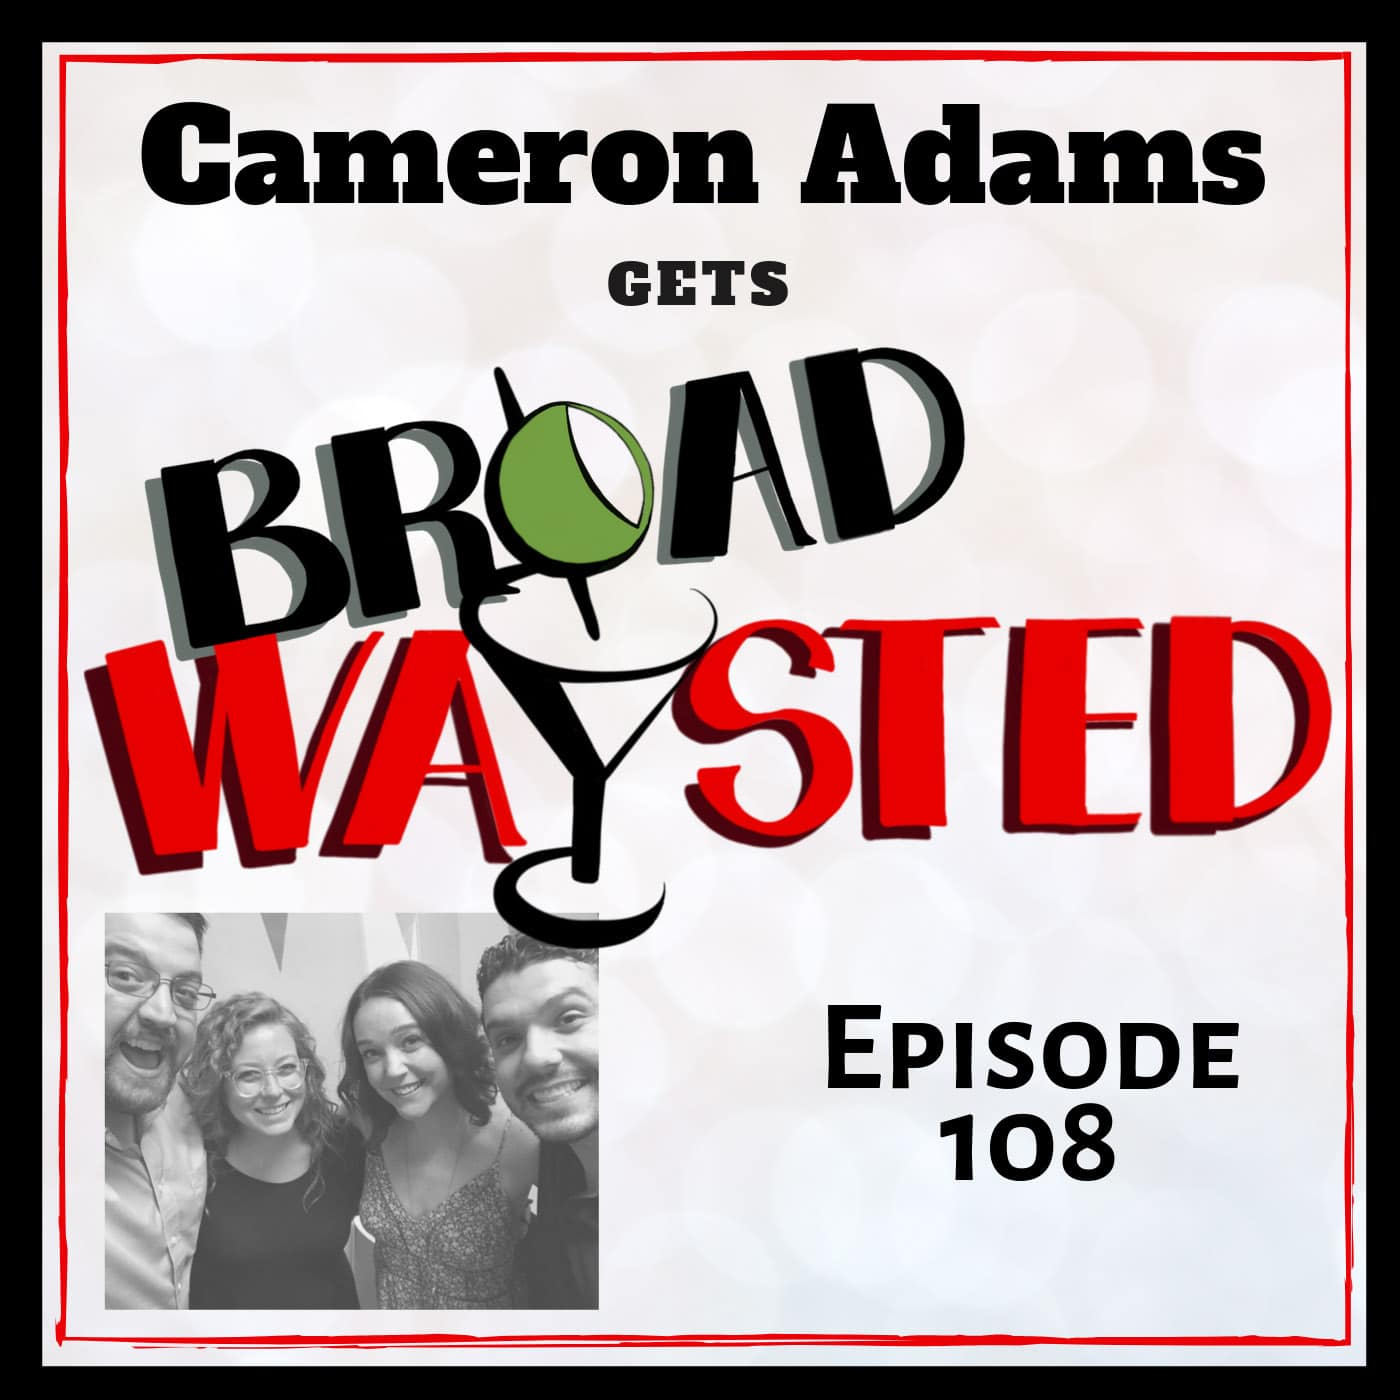 Broadwaysted Ep 108 Cameron Adams